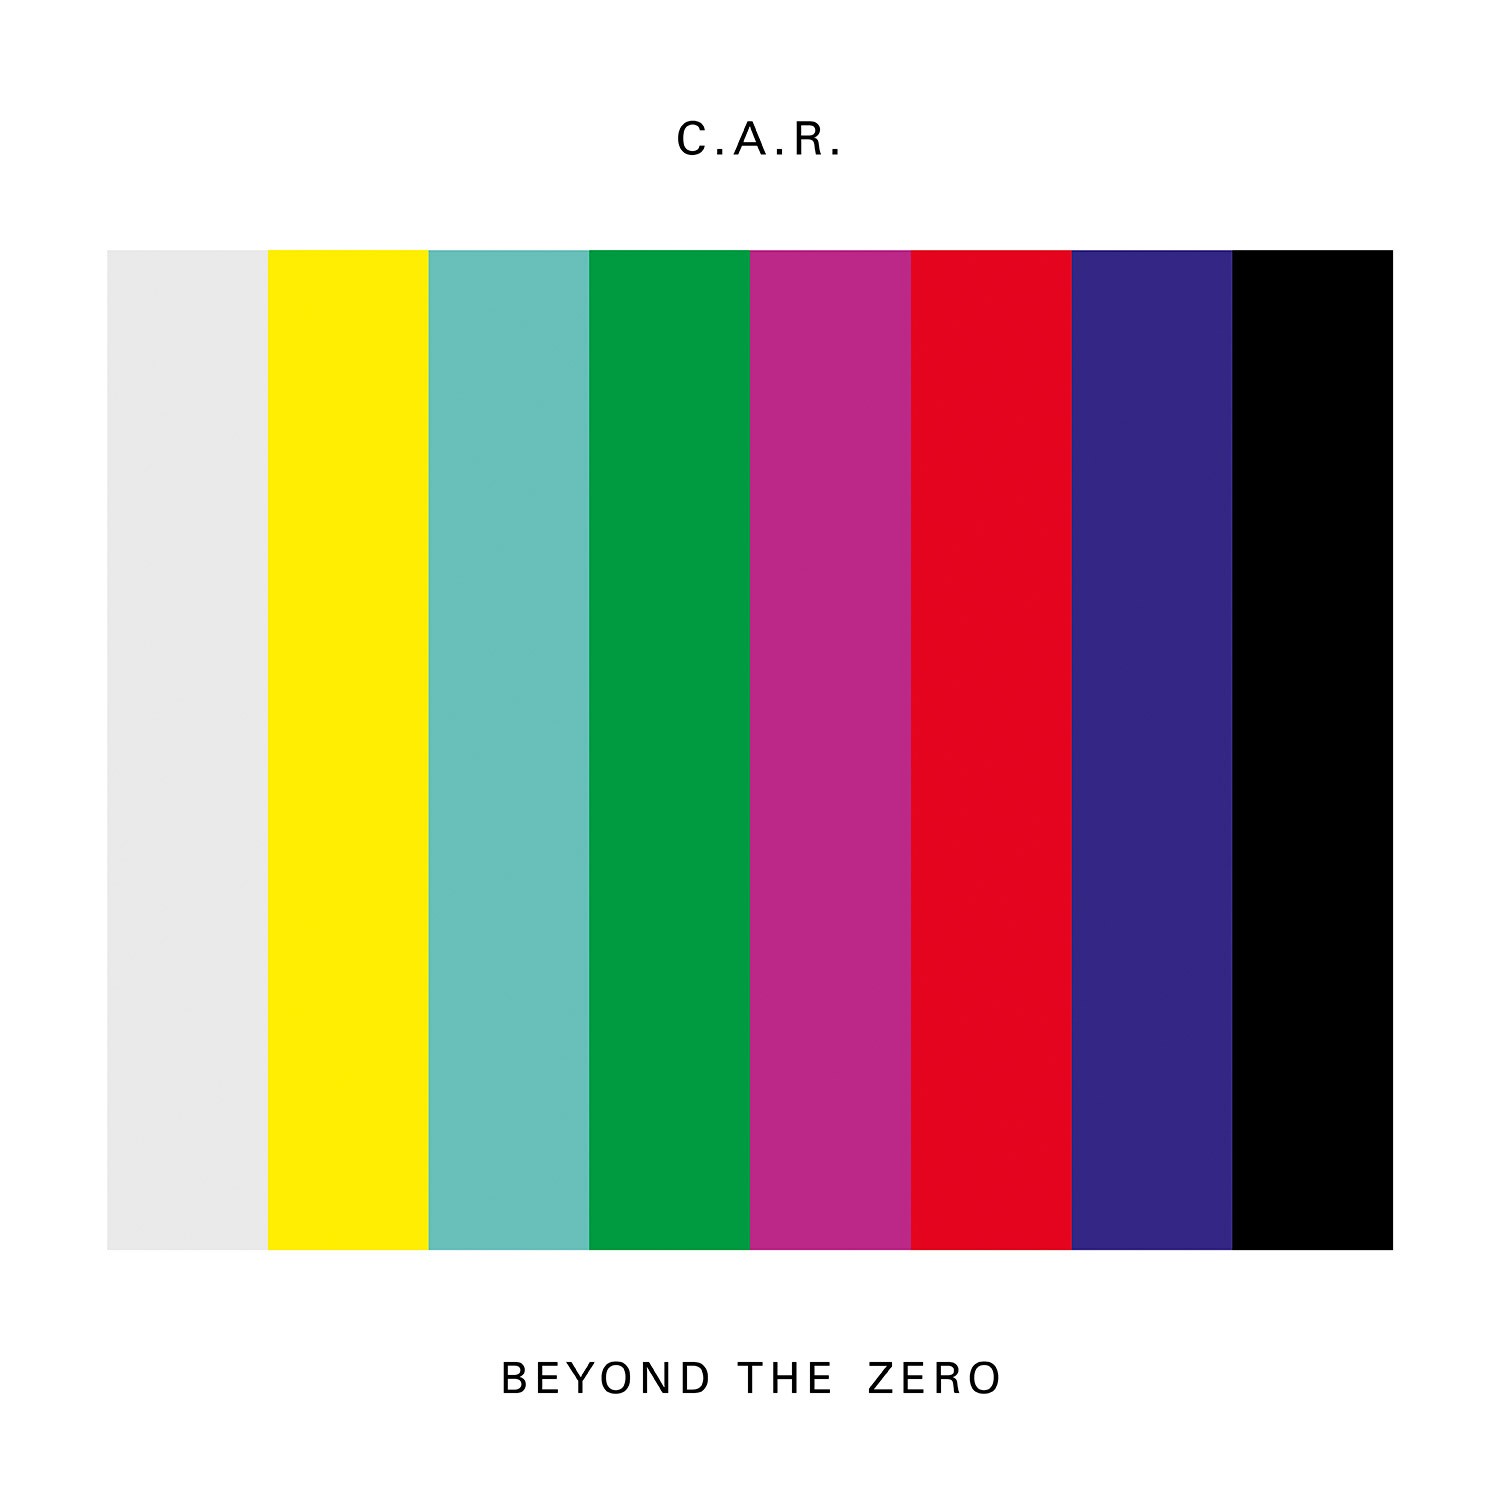 files/lux/theme/pics/CAR-Beyond_The_Zero-Cover.jpg